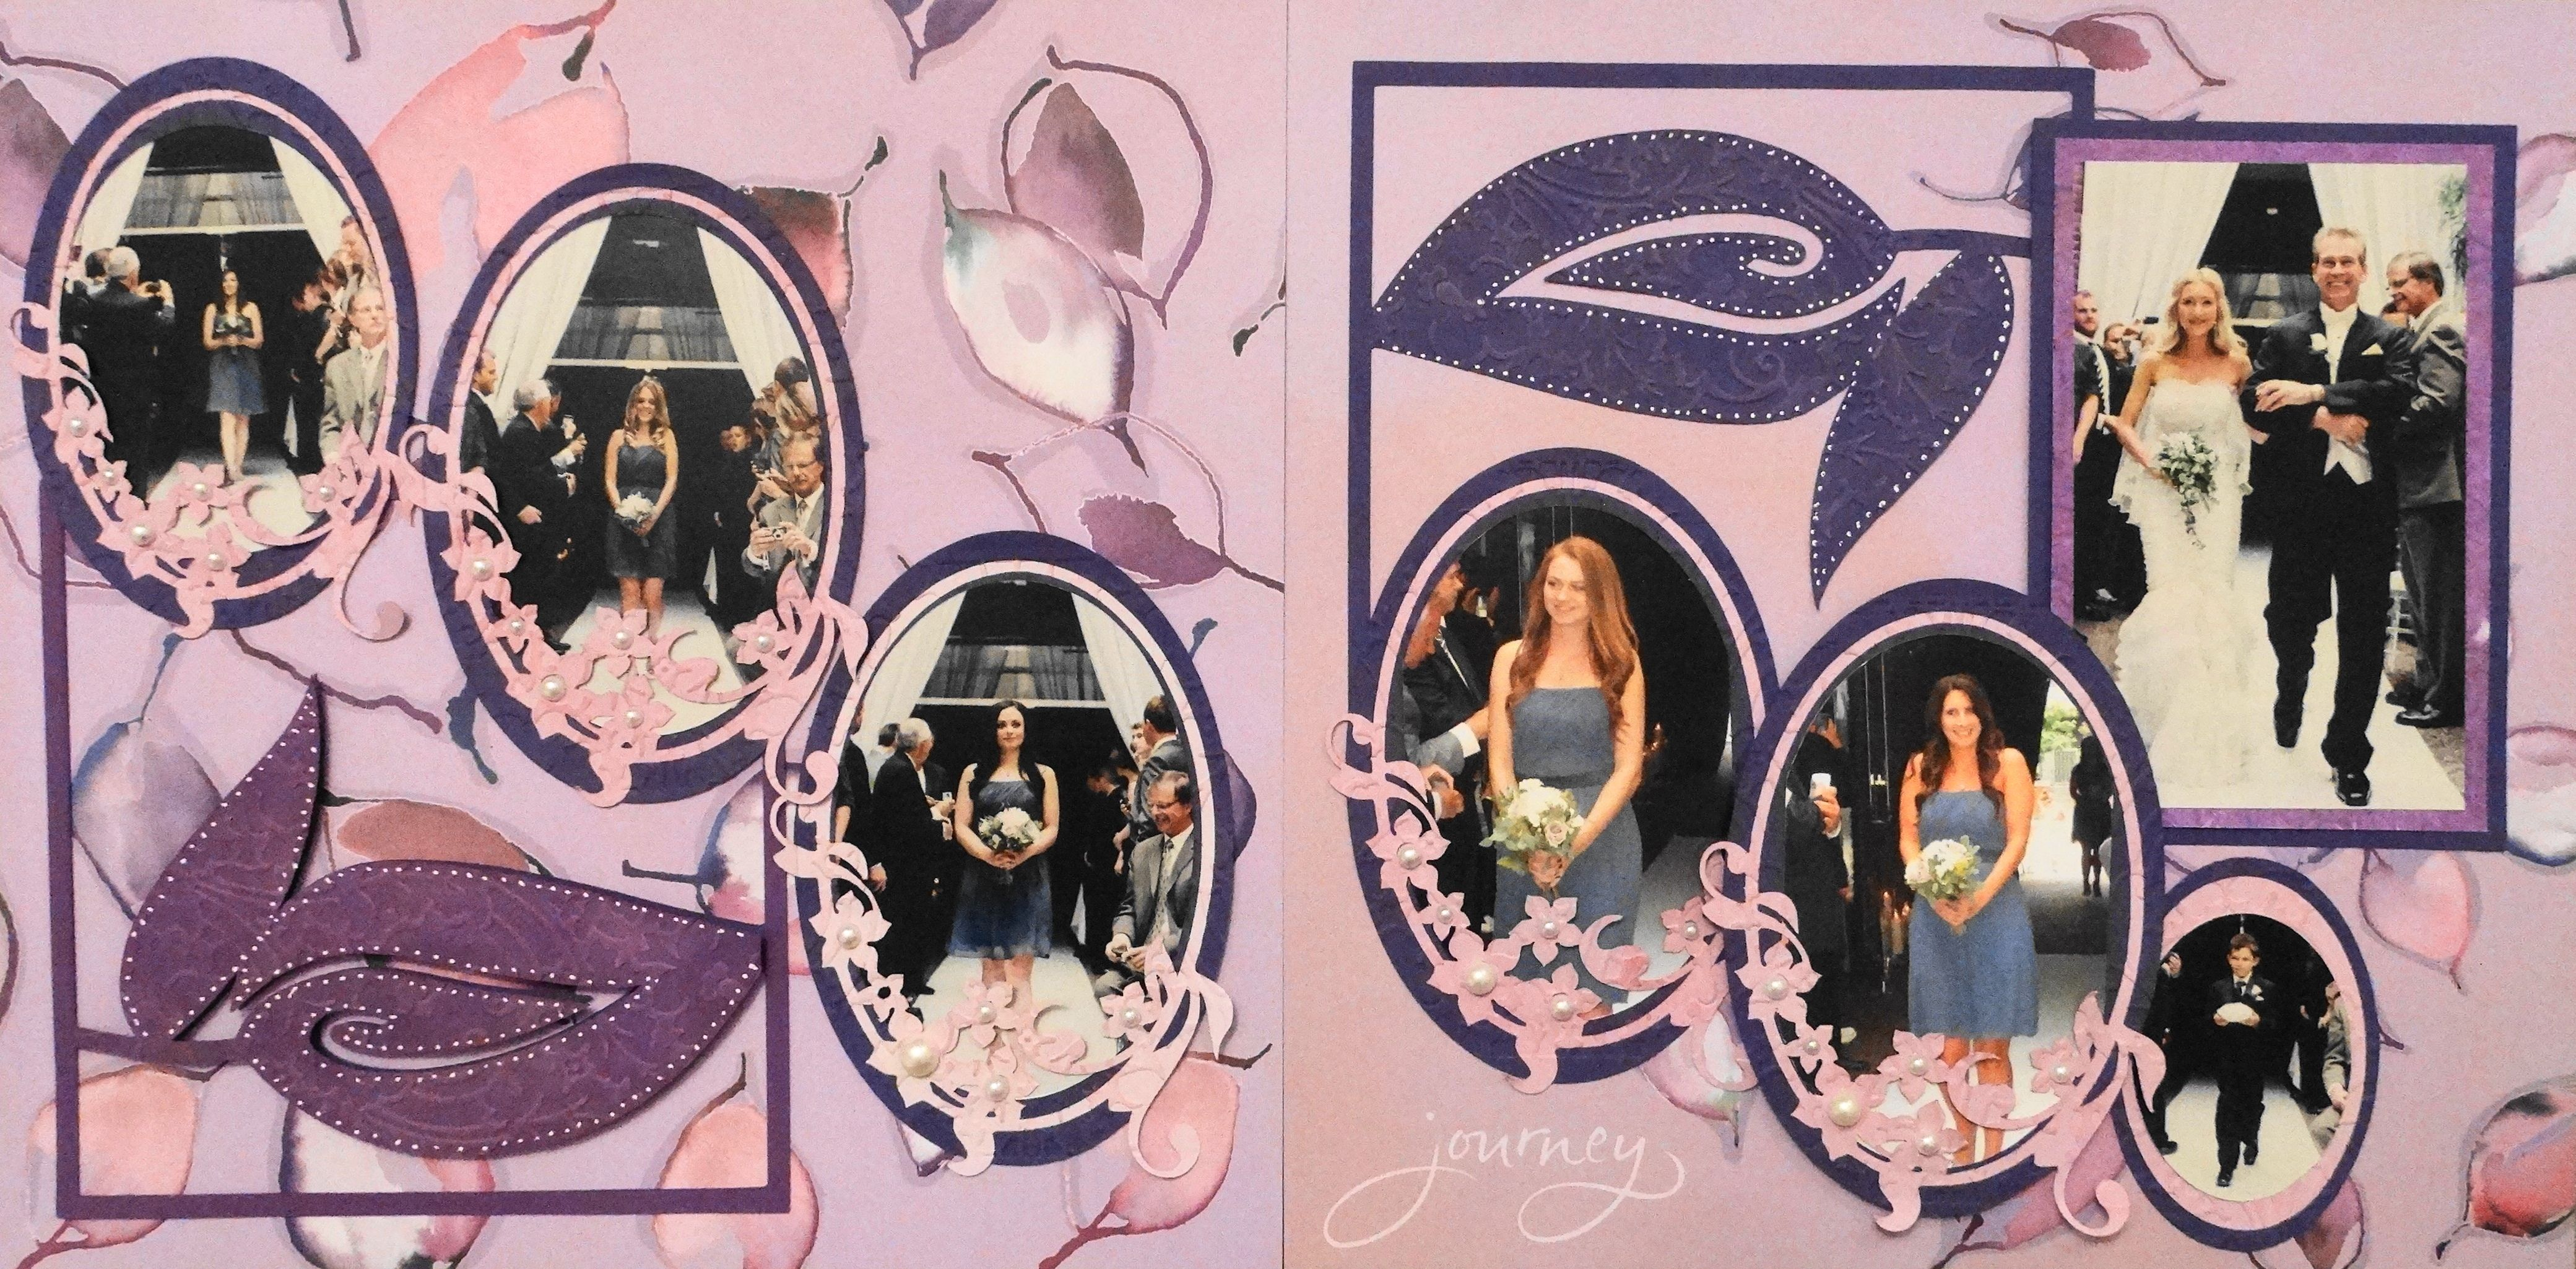 Wedding scrapbook ideas using cricut - Wedding Scrapbook Page With Large Leaf Cards From Cricut Cartridge Lyrical Letters From Wedding Album 4